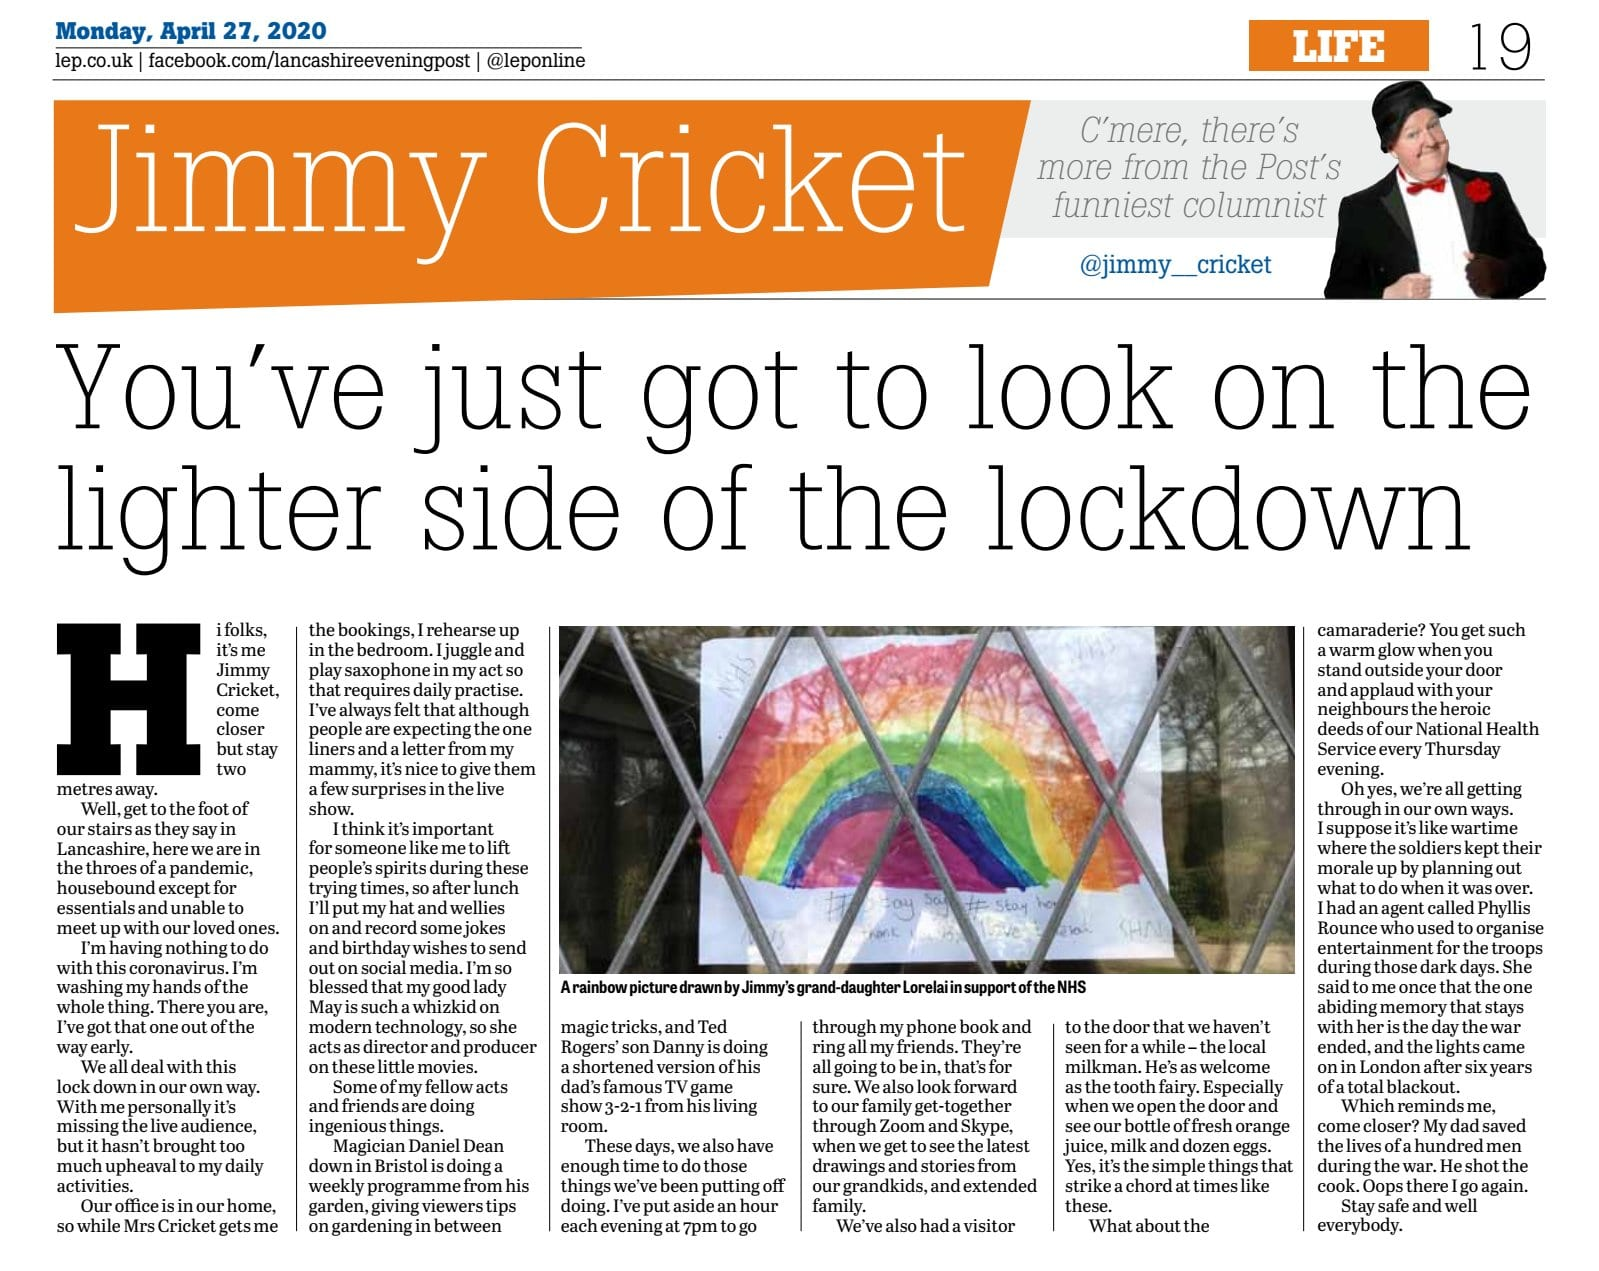 Jimmy Cricket talks about life under the lockdown in his latest newspaper column.